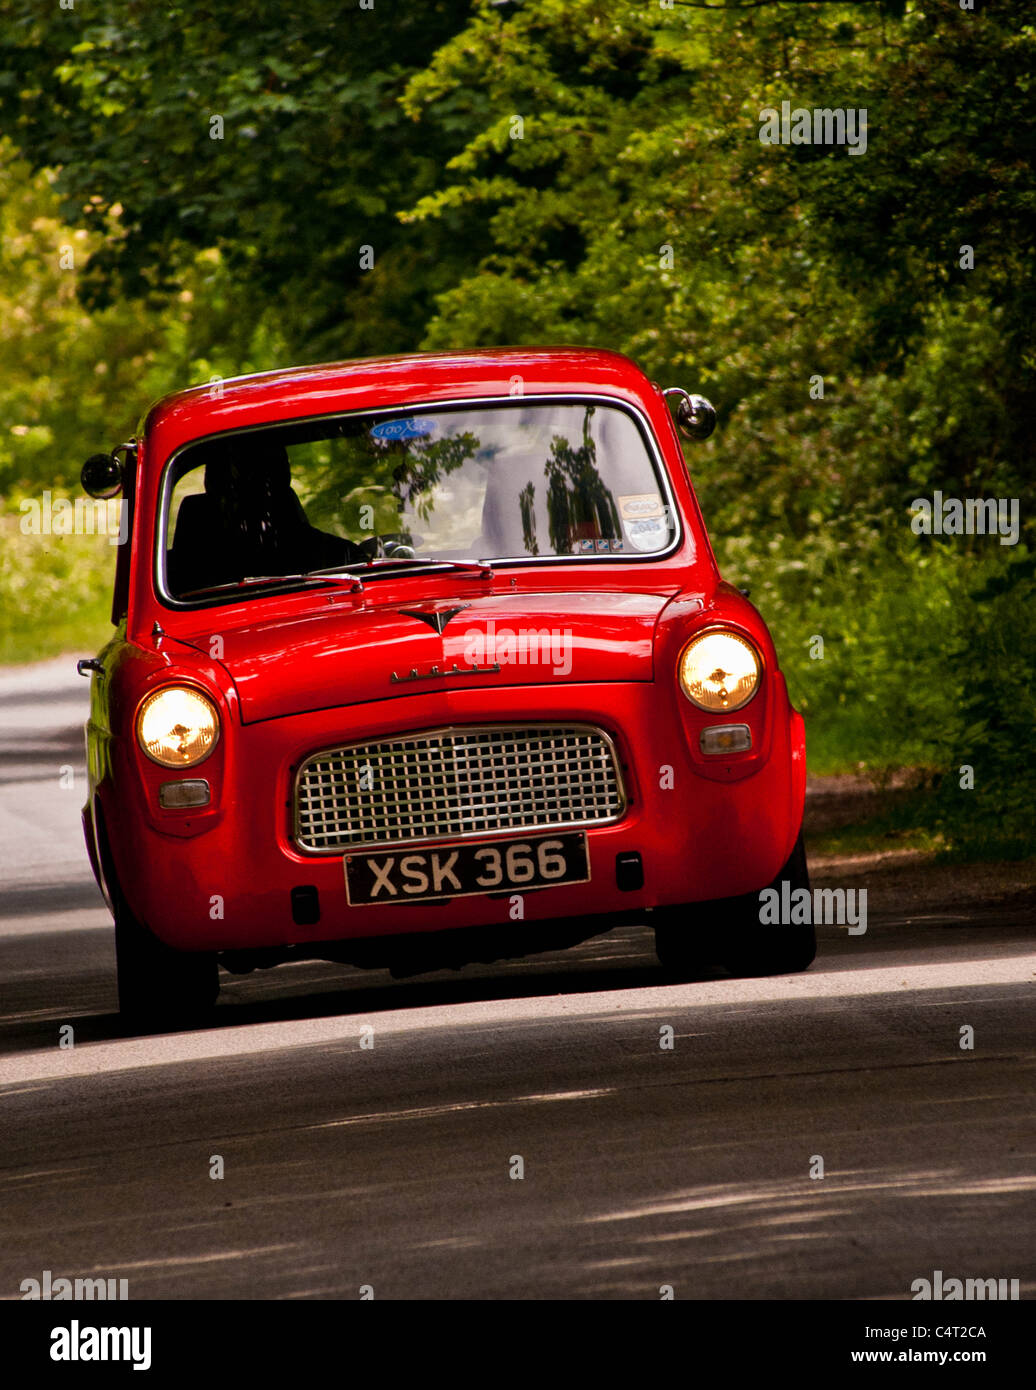 Renovated classic car 1959 Ford Anglia 100E driving in English country lane - Stock Image